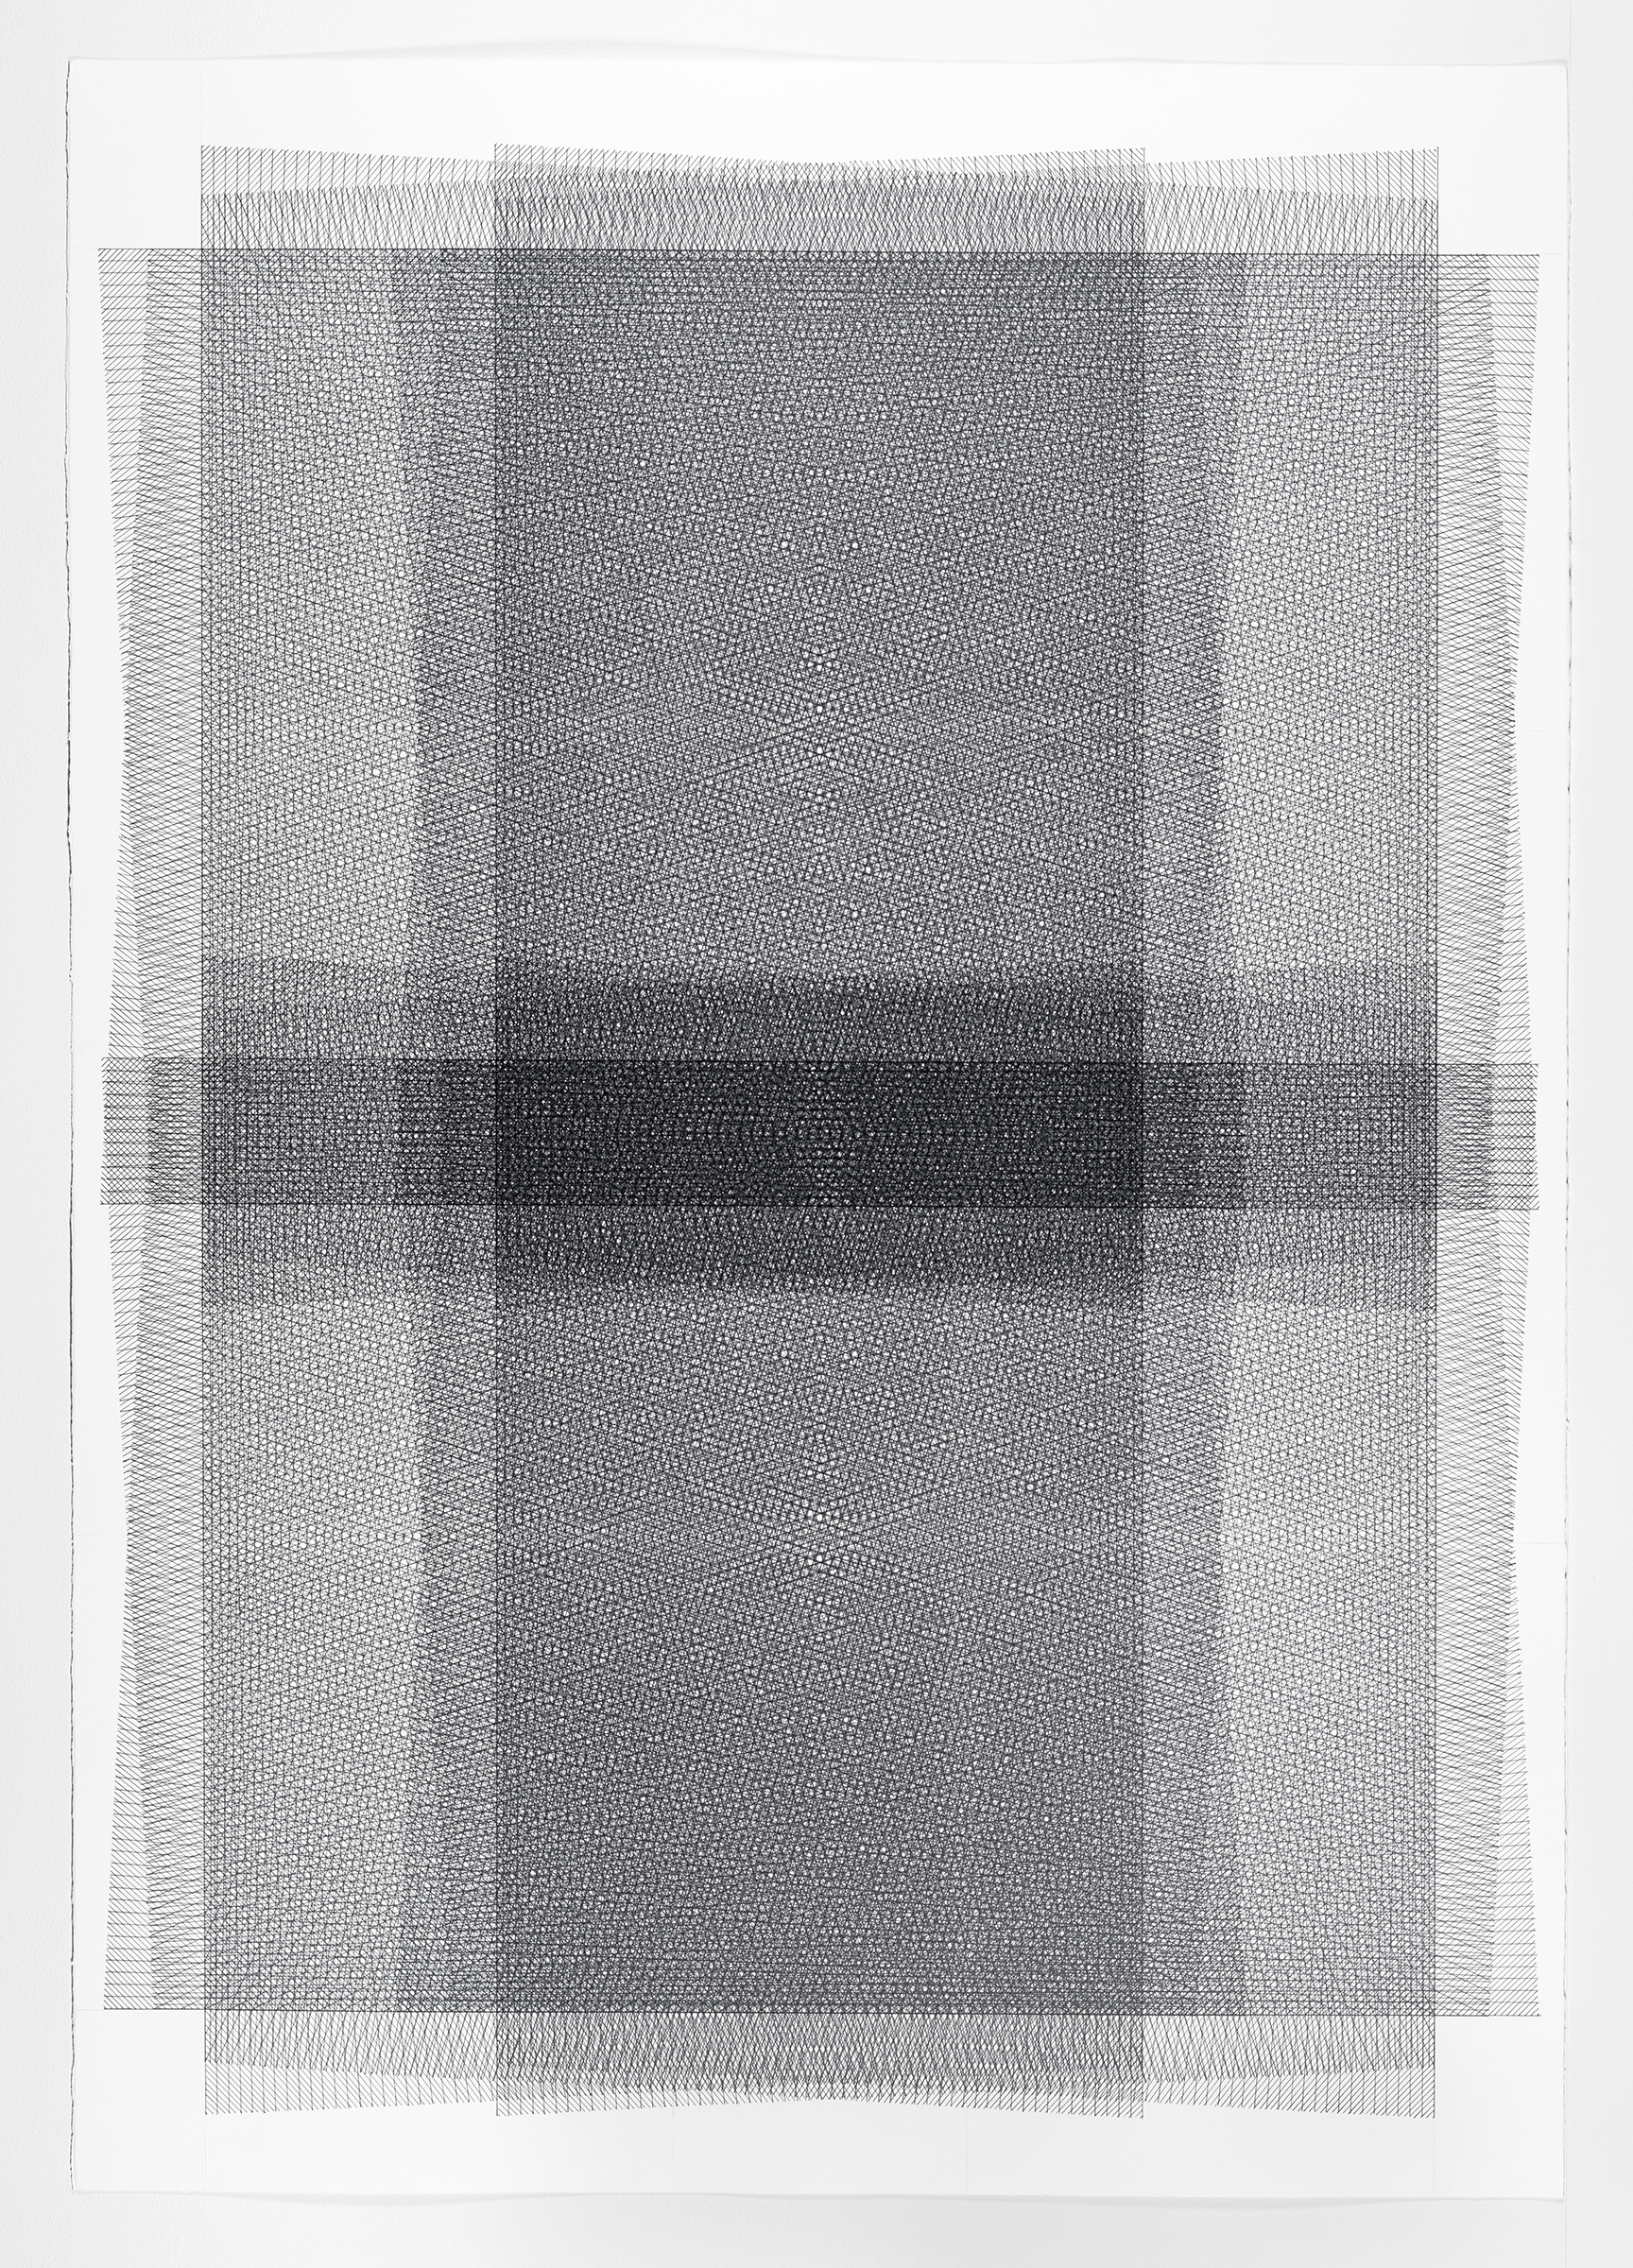 5 of 5; additive series, grey, 40 x 30 inches, 2016